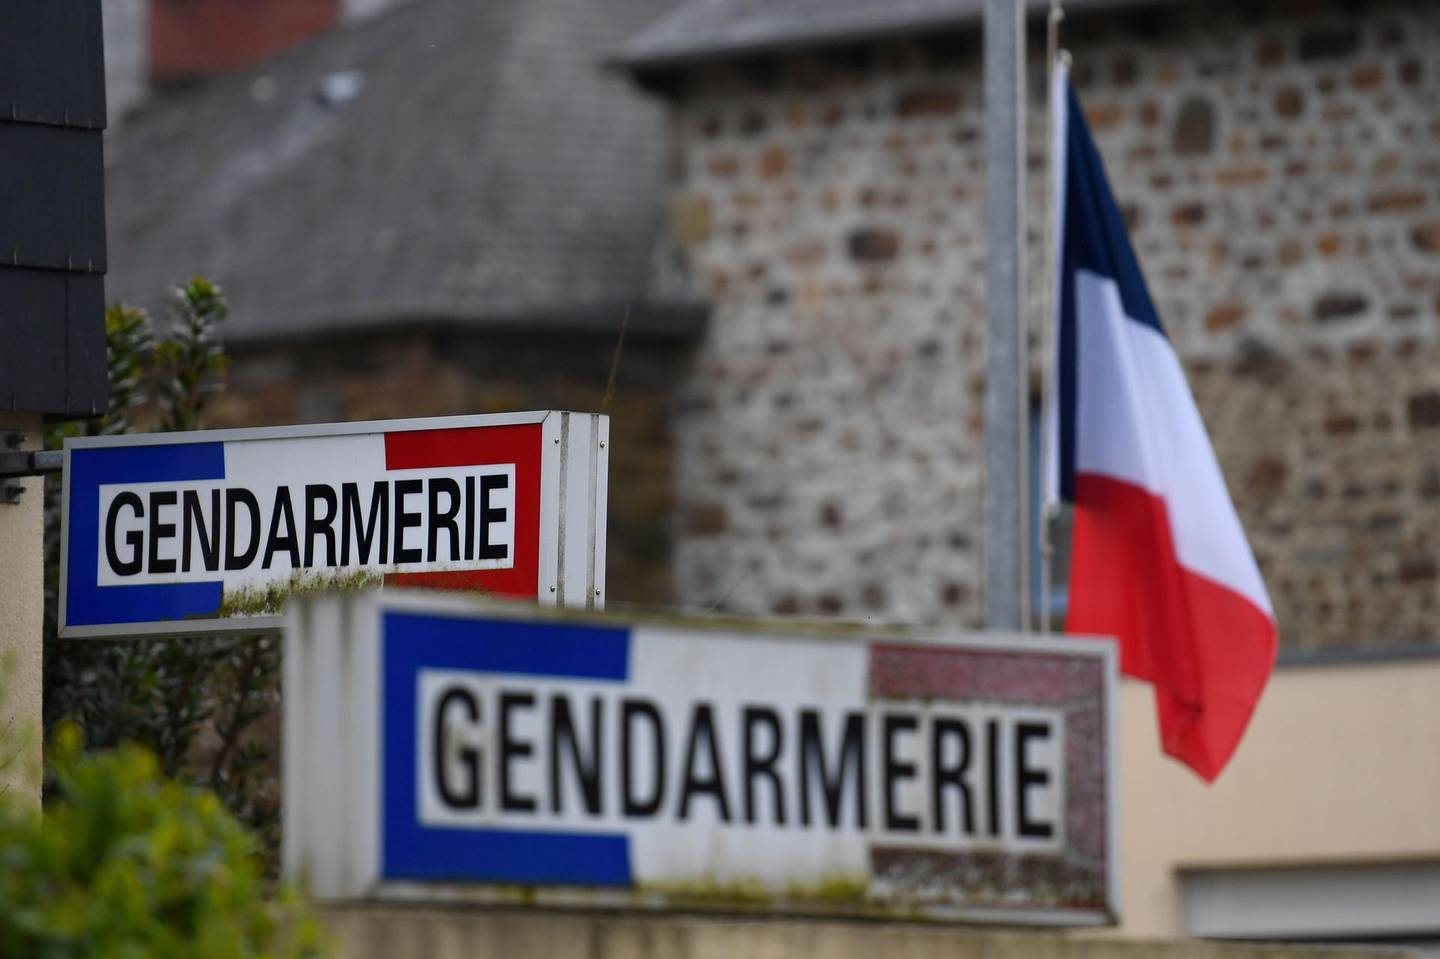 A French flag is seen lowered to half mast on March 24, 2018 at the gendarmerie in Hédé-Bazouges, suburb of Rennes, western France, as a tribute to French Lieutenant Colonel Arnaud Beltrame who was killed the day before after swapping himself for a hostage in a rampage and siege in the town of Trebes.  / AFP PHOTO / DAMIEN MEYER